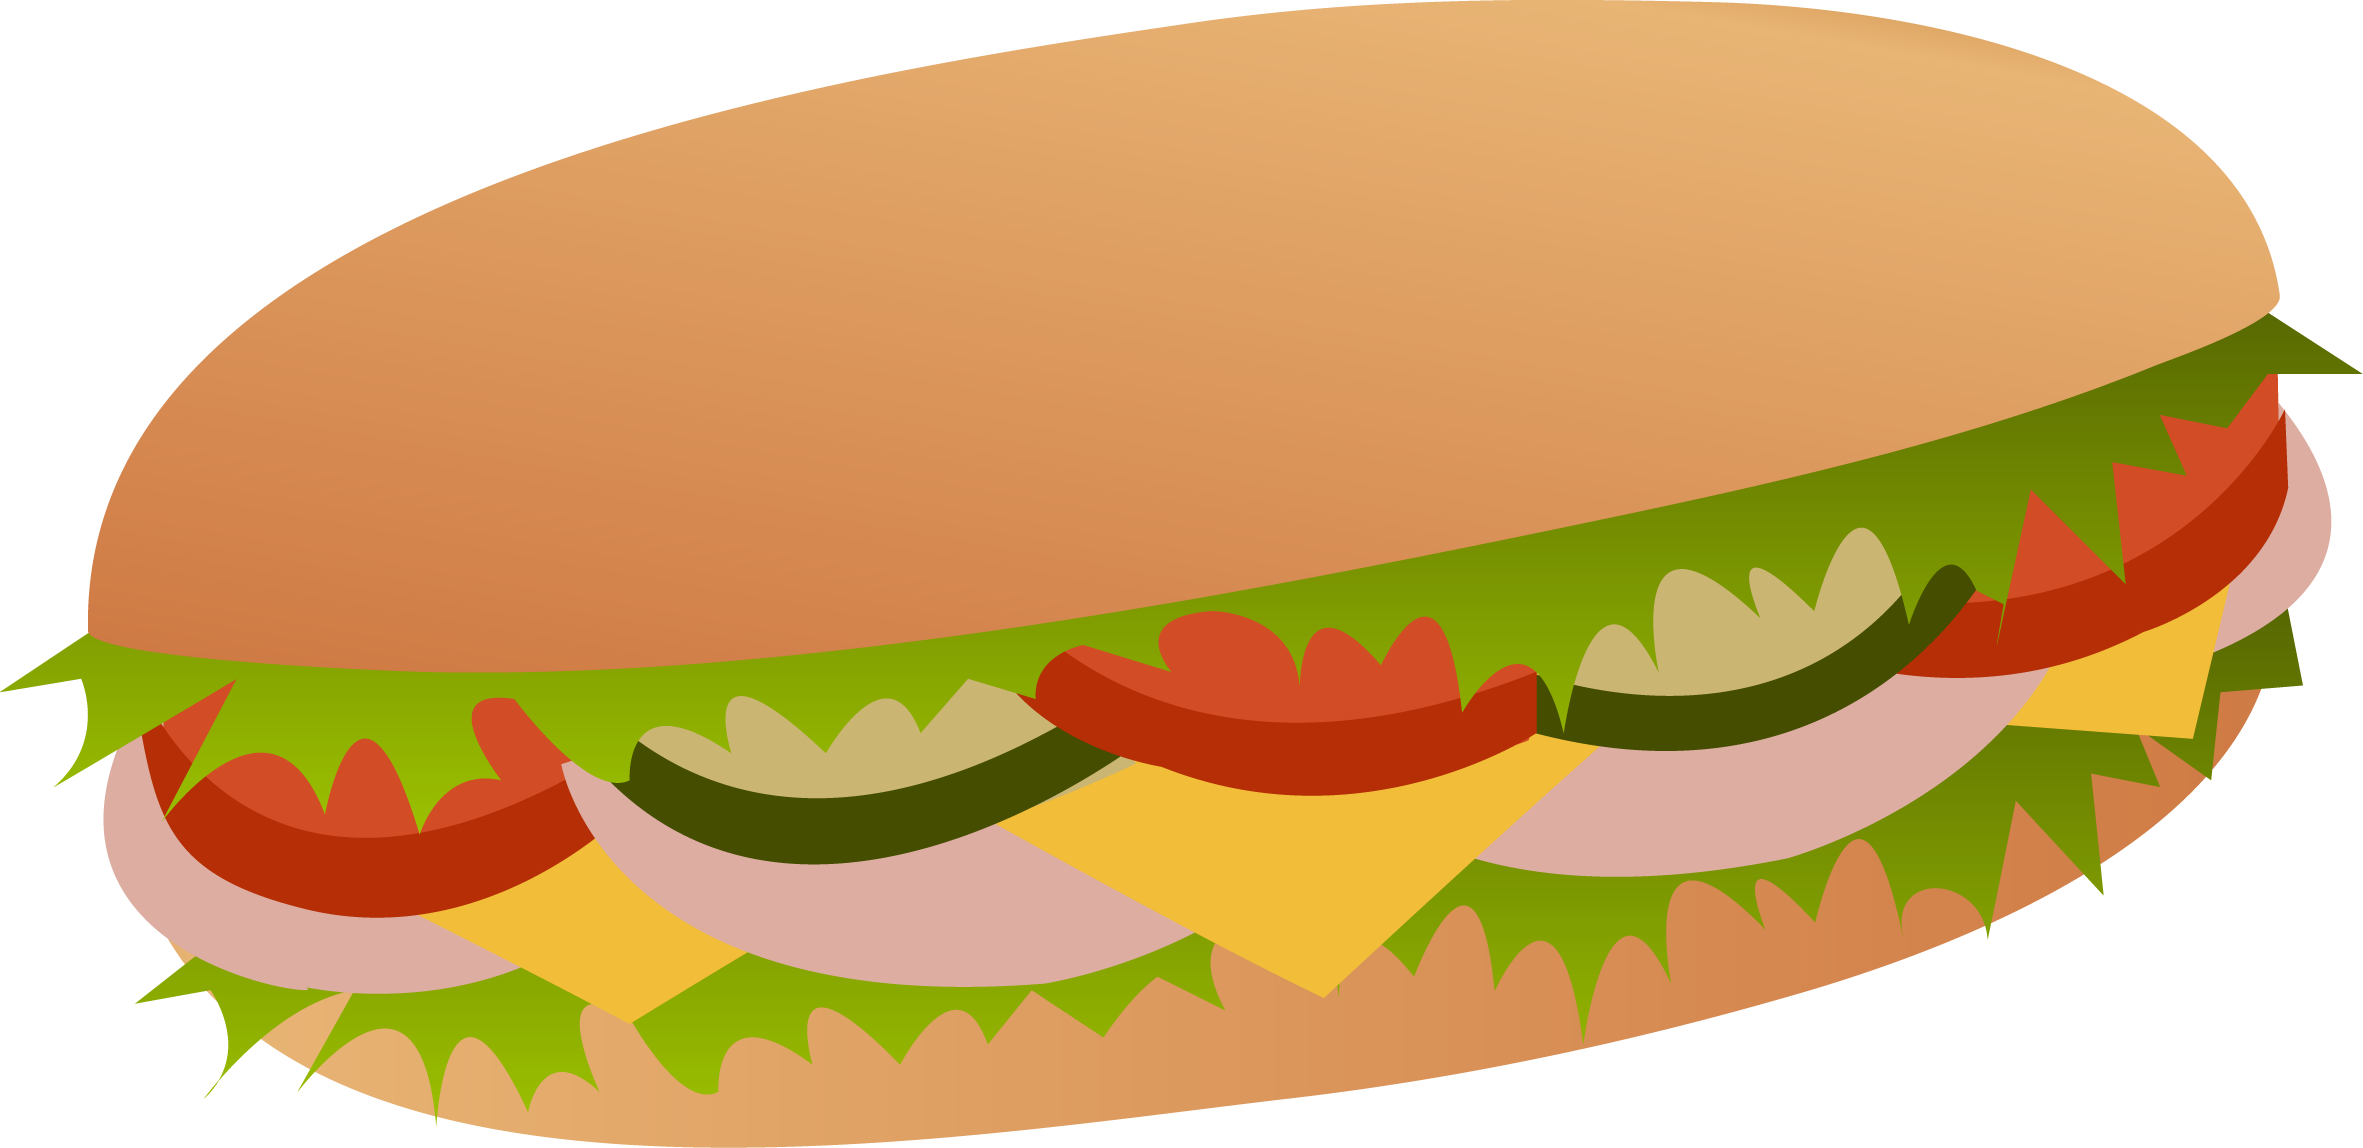 Sandwich Cartoon Png